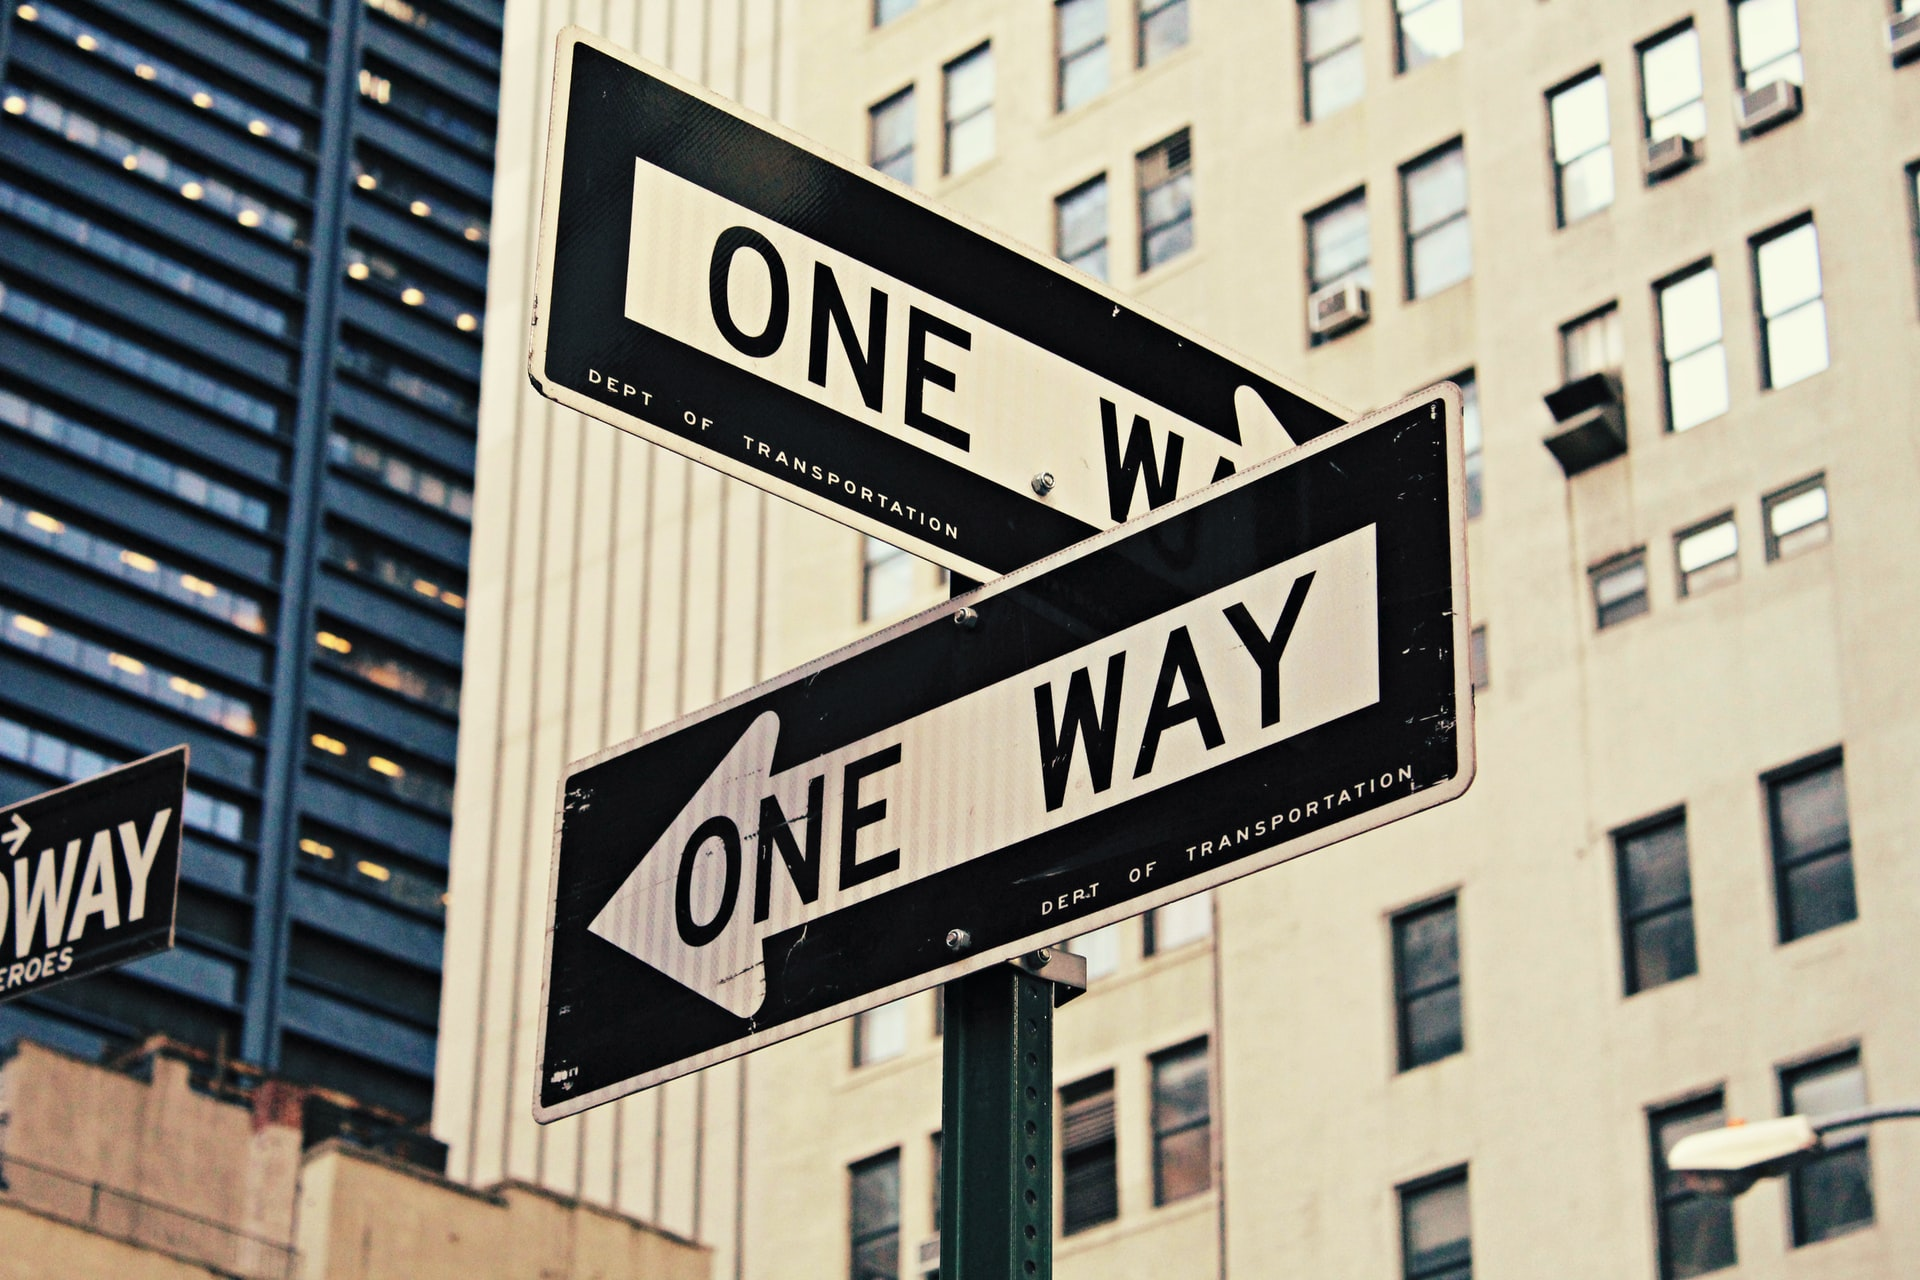 One Way signs in NYC by Brendan Church